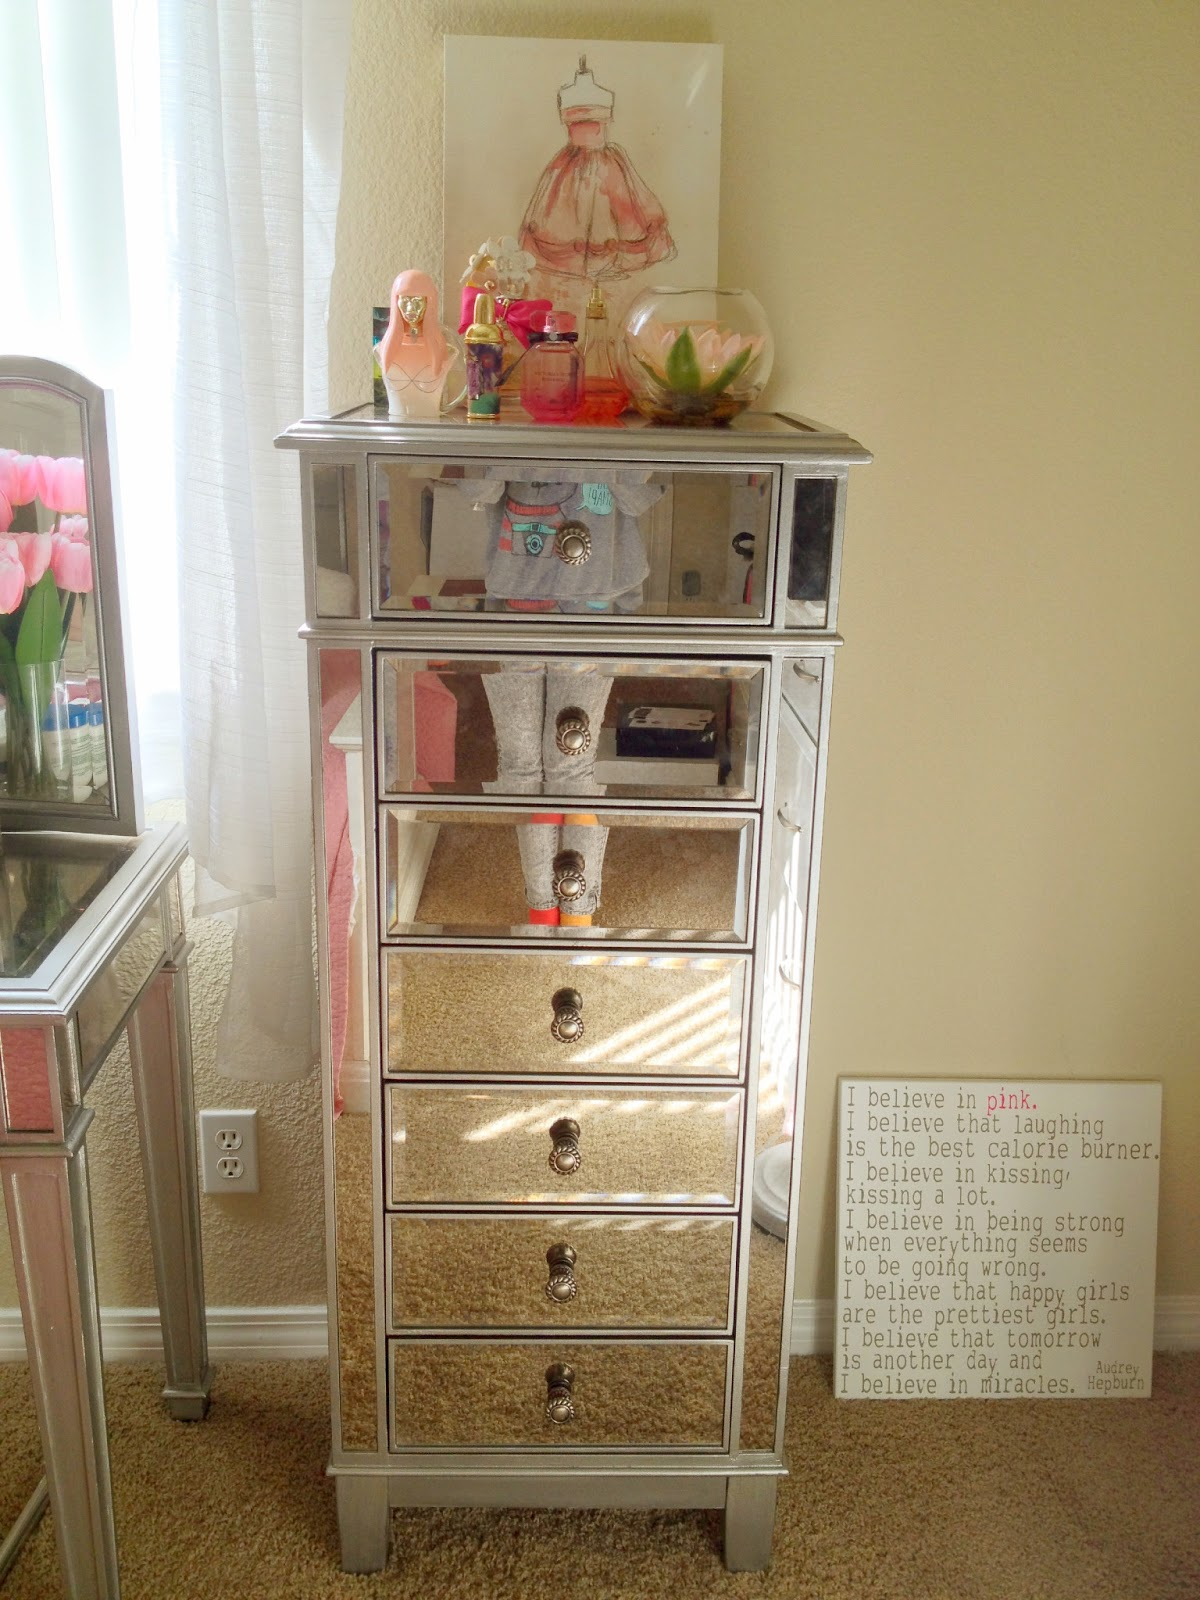 Thatsheart makeup collection storage for Armoire salon design